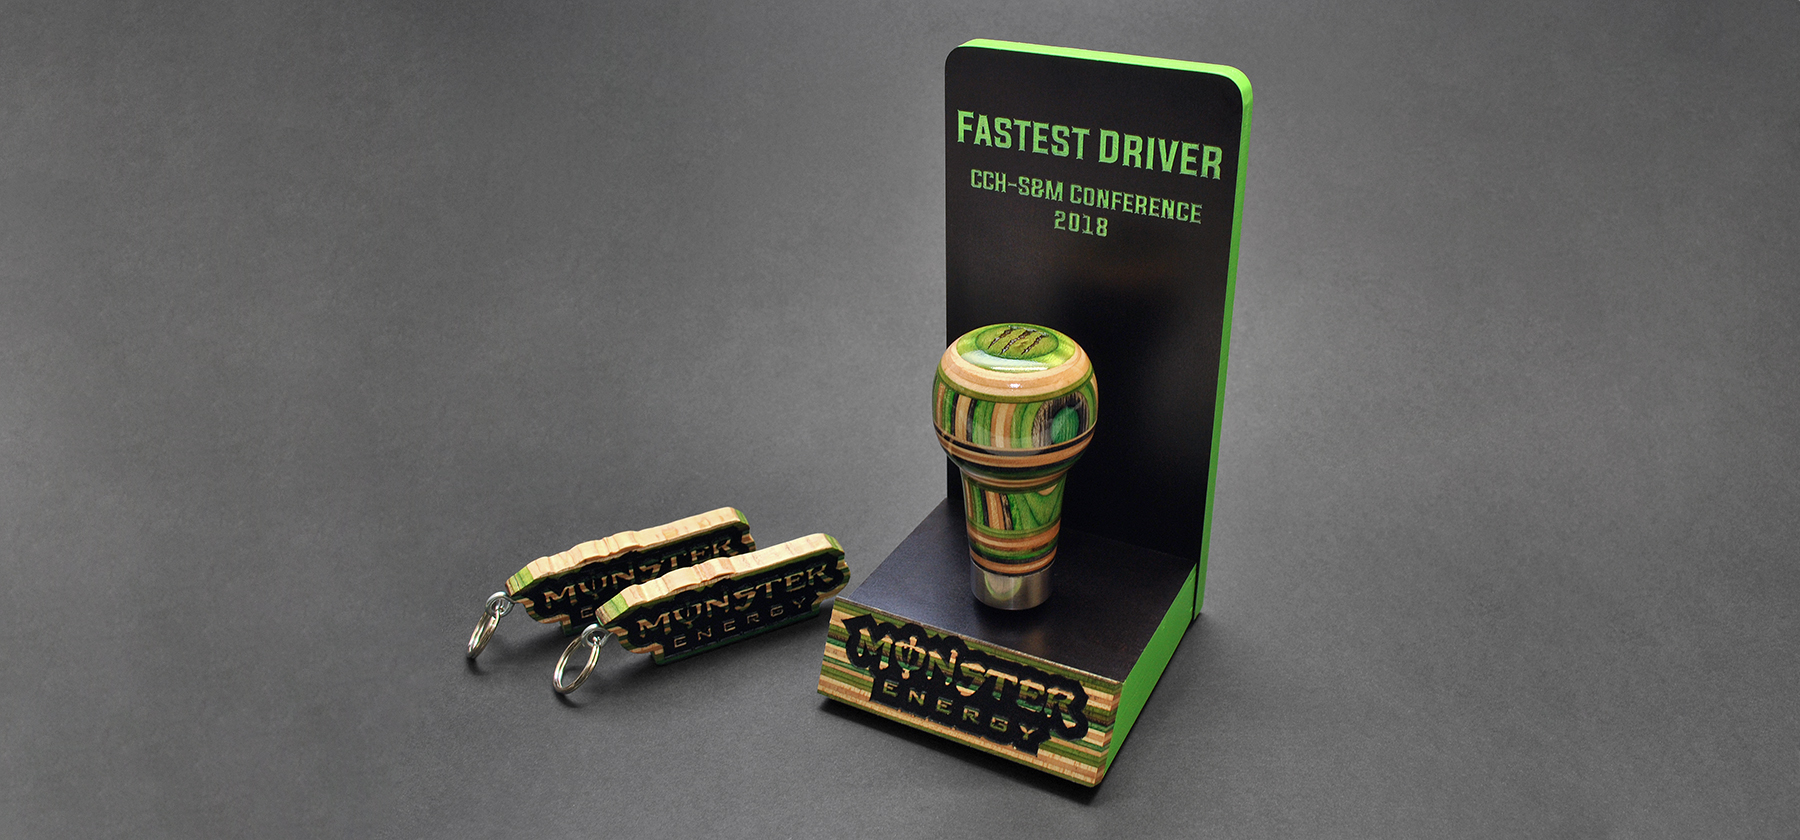 monster energy shift knob trophy